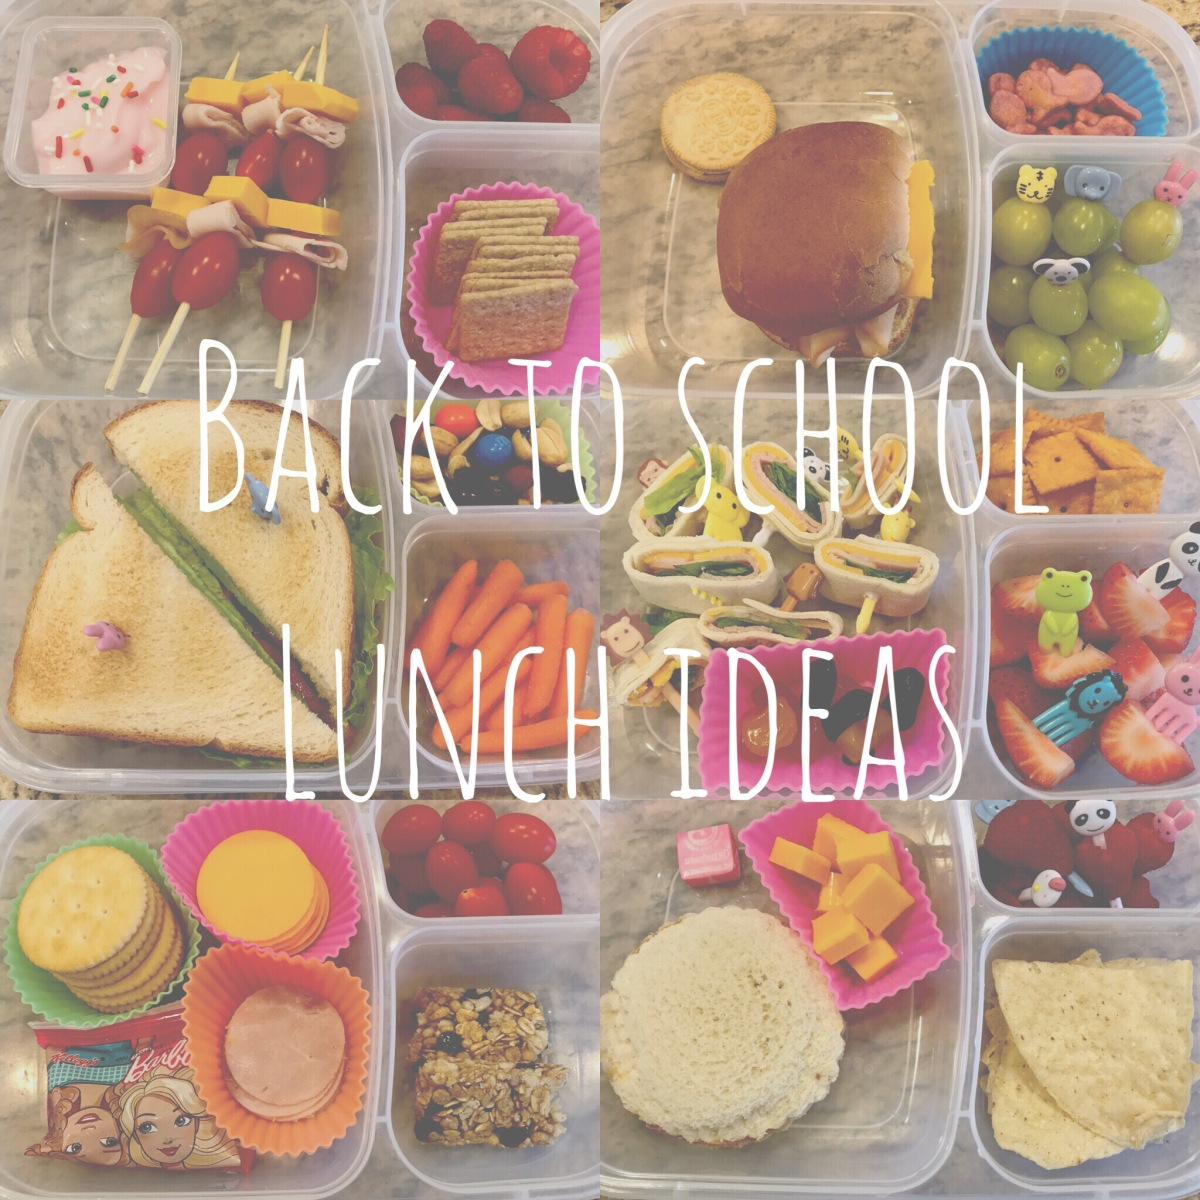 EAT | Back to School Lunch Ideas